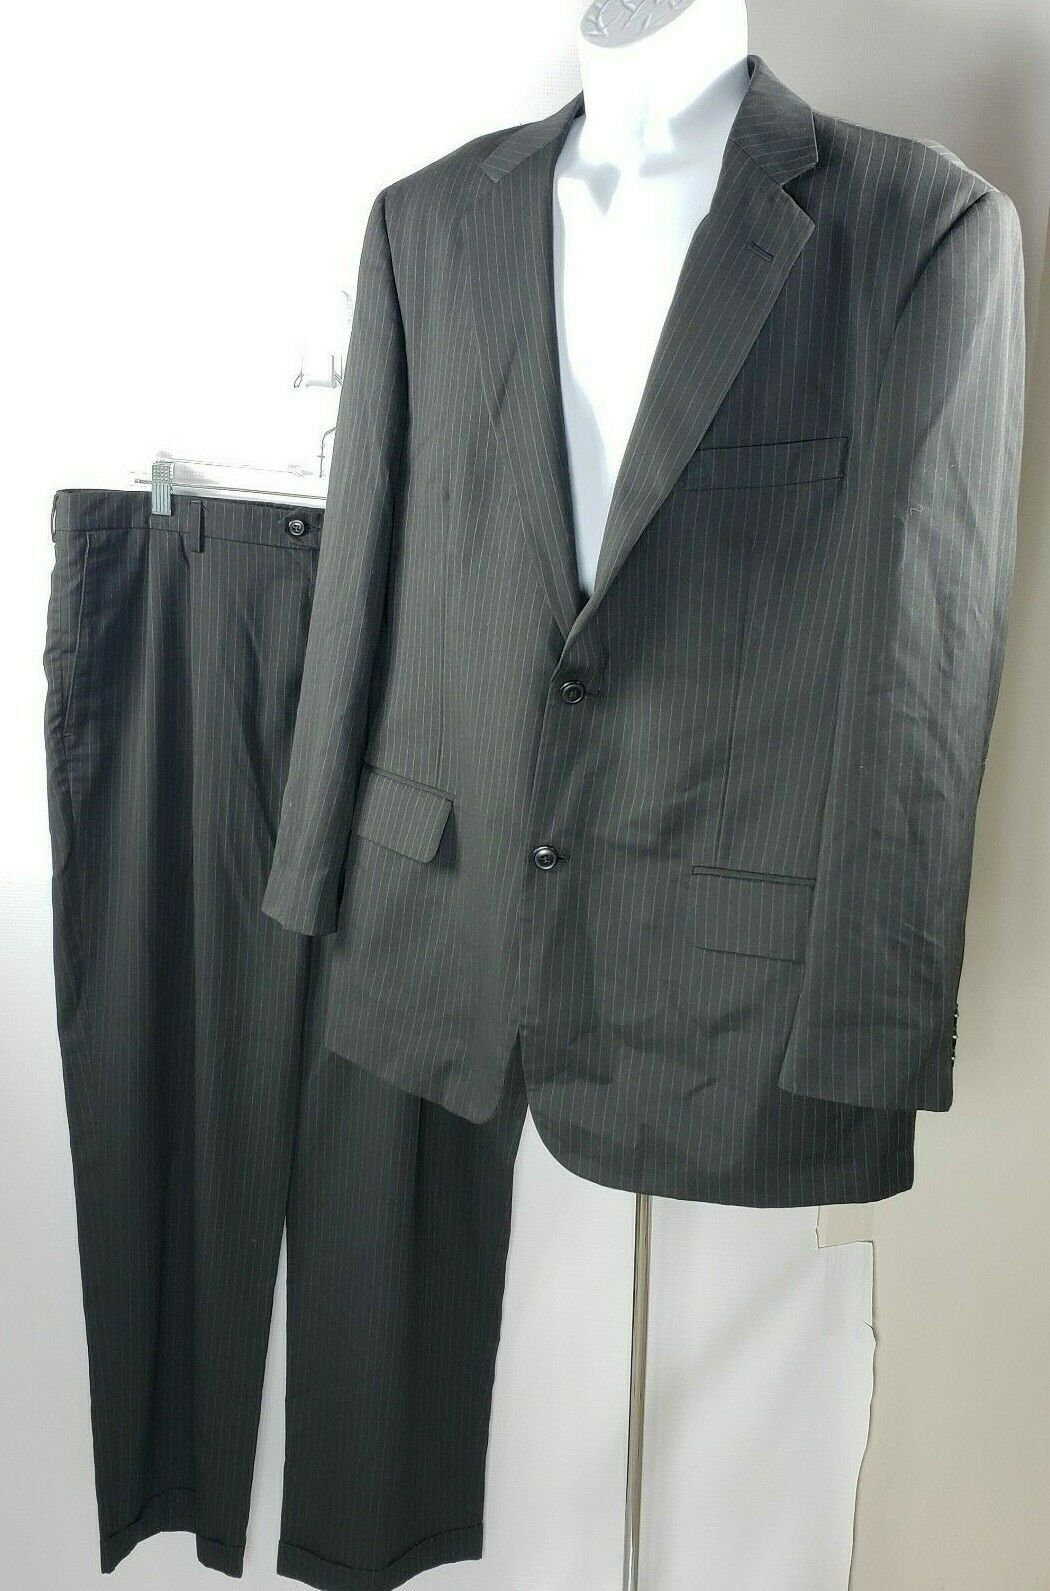 Primary image for Haggar 2-Piece Suit 2-Button Blazer 46R & Cuffed Pants 42x32 Black W/ Pinstripes